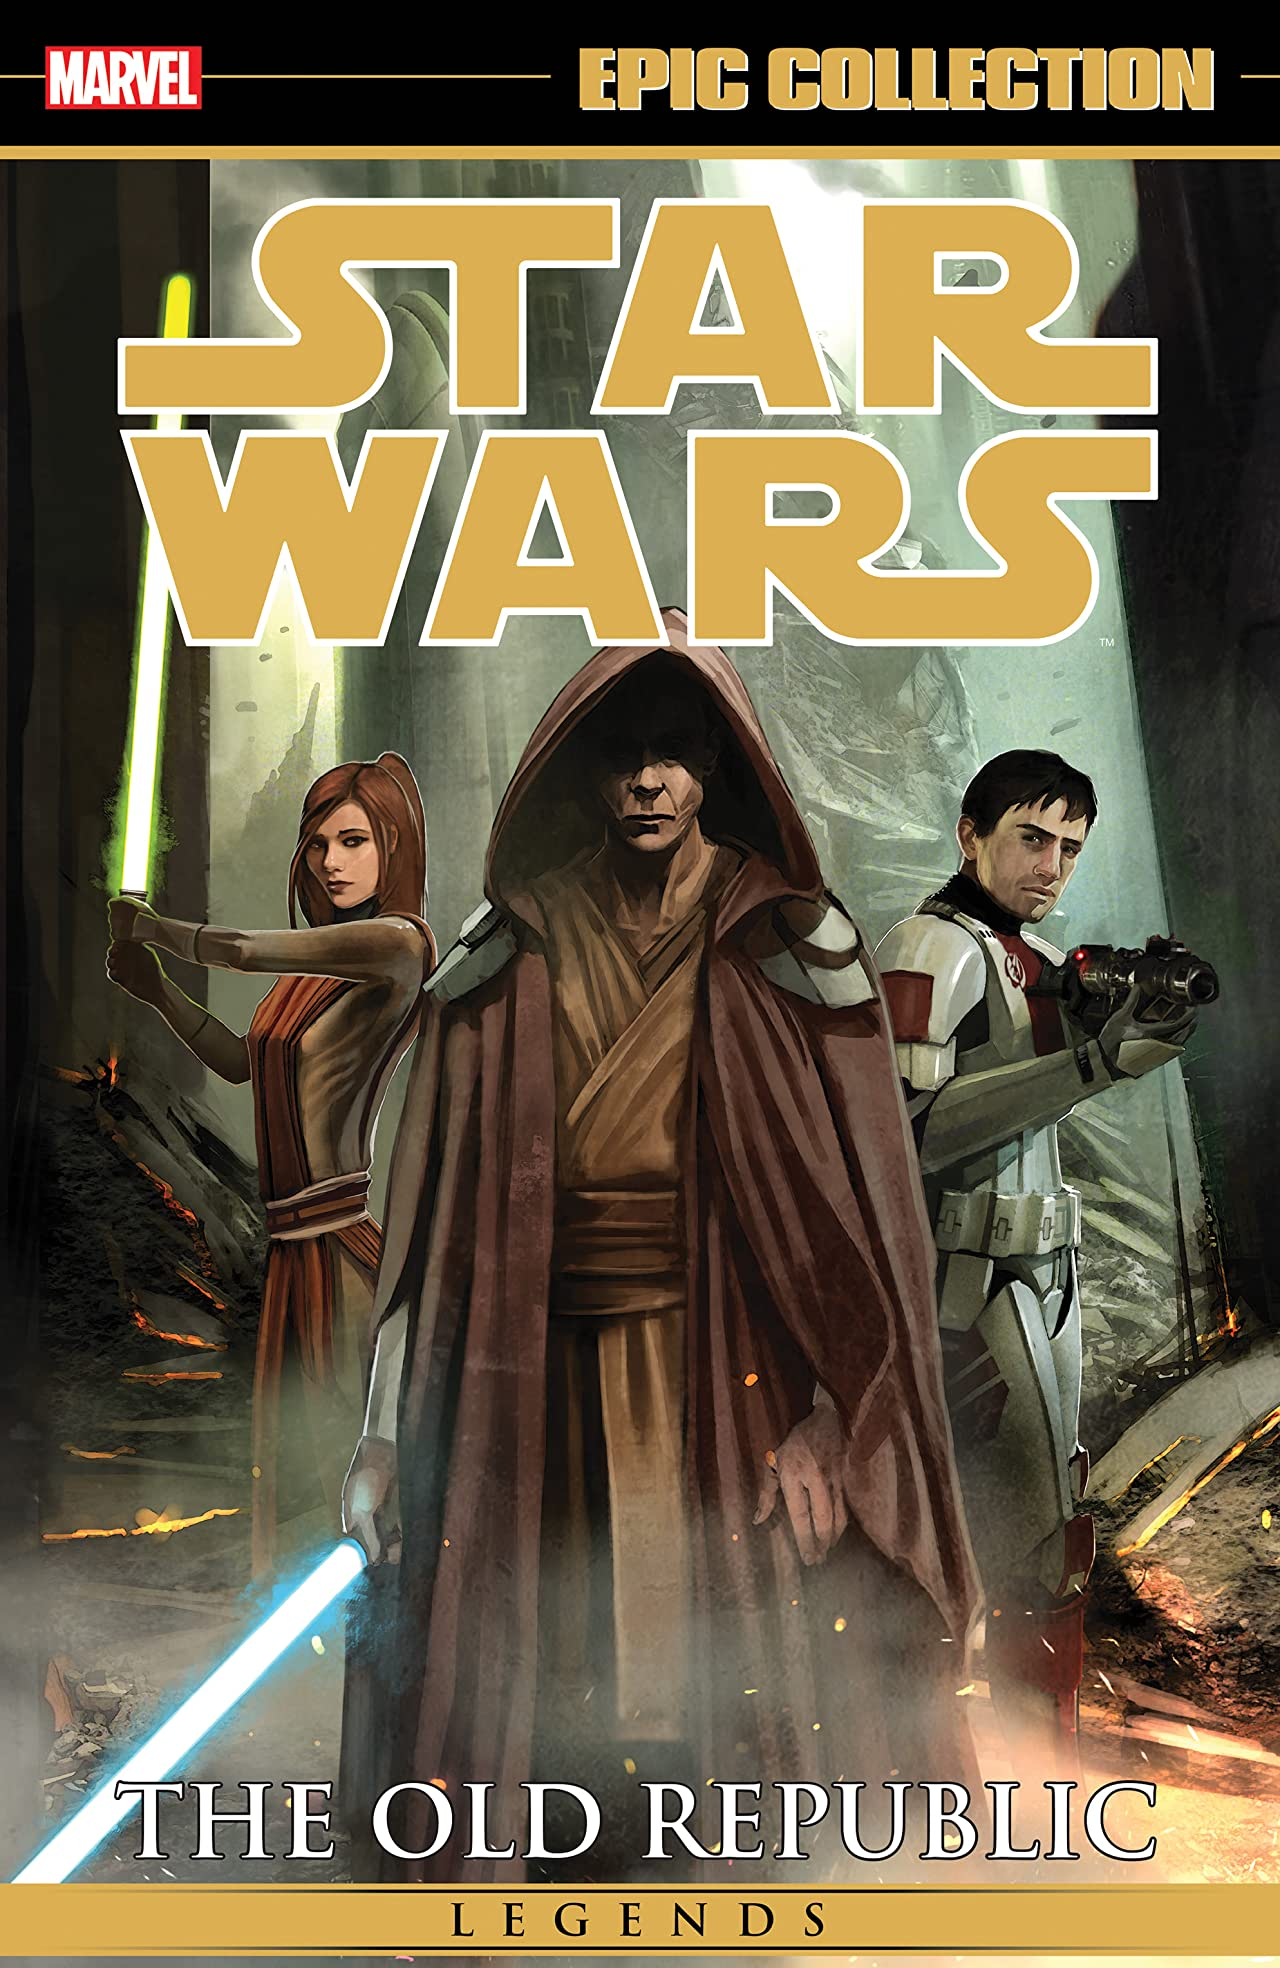 Star Wars Legends Epic Collection: The Old Republic Vol. 4 (Trade Paperback)